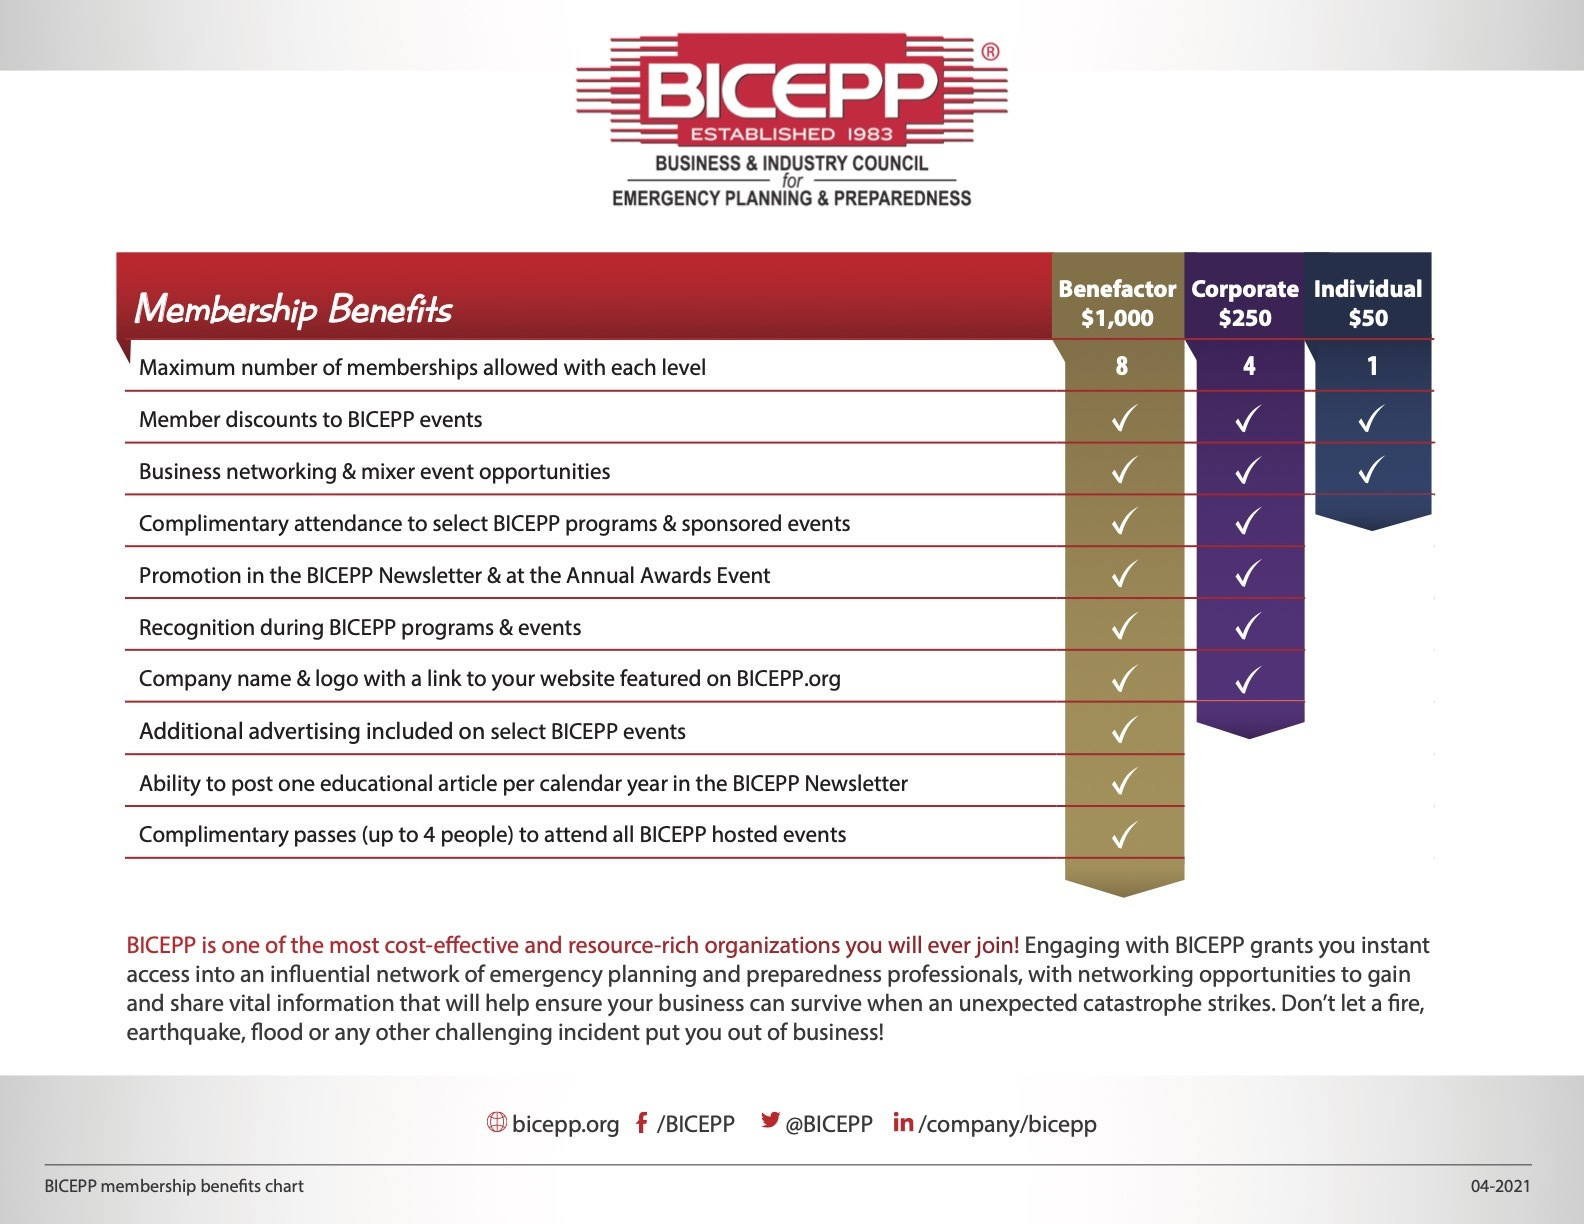 2021 BICEPP_MemberBenefits_04-21-21 FINAL PRINT VERSION.jpg